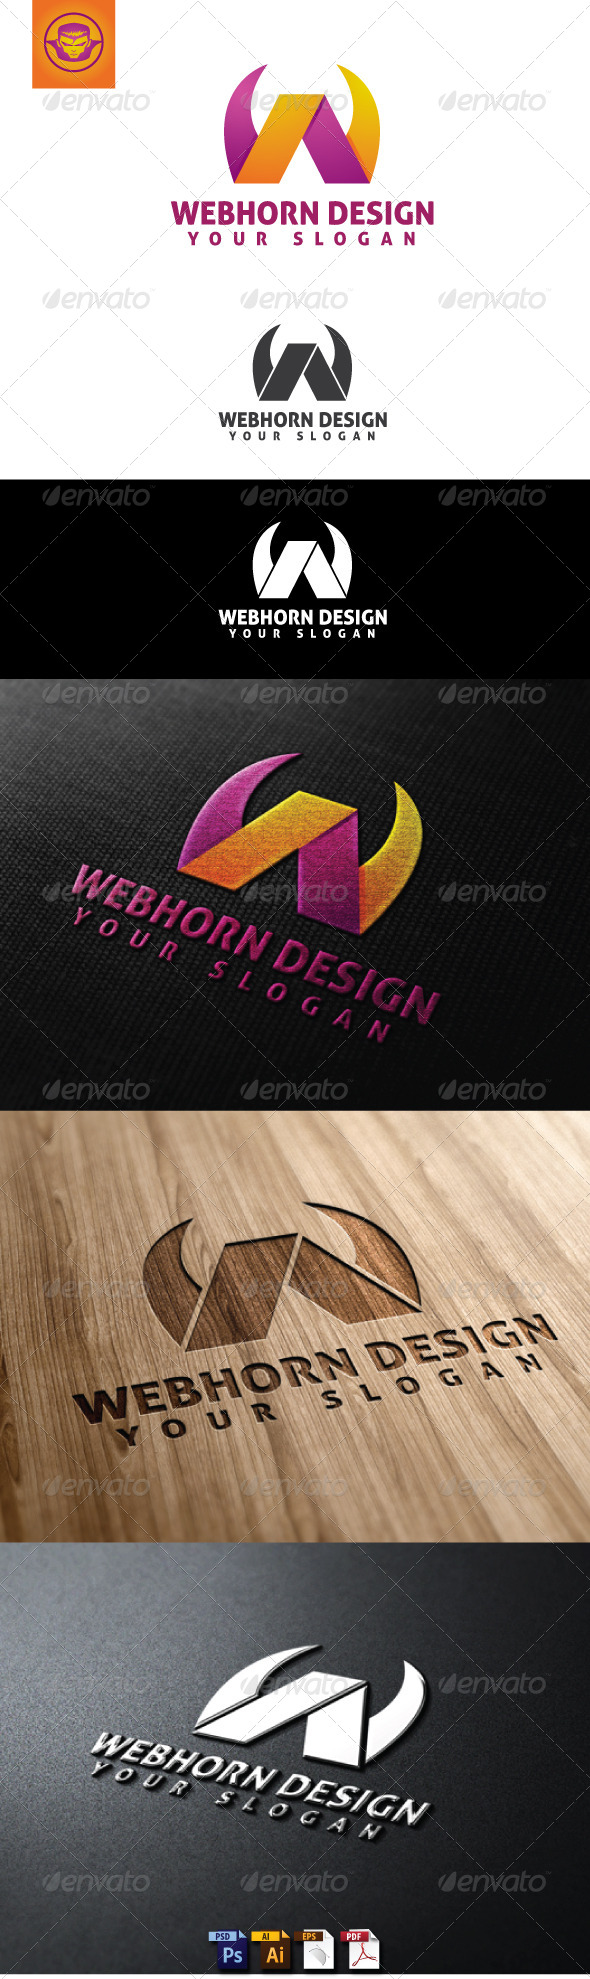 GraphicRiver Webhorn Design Logo Template 4945678